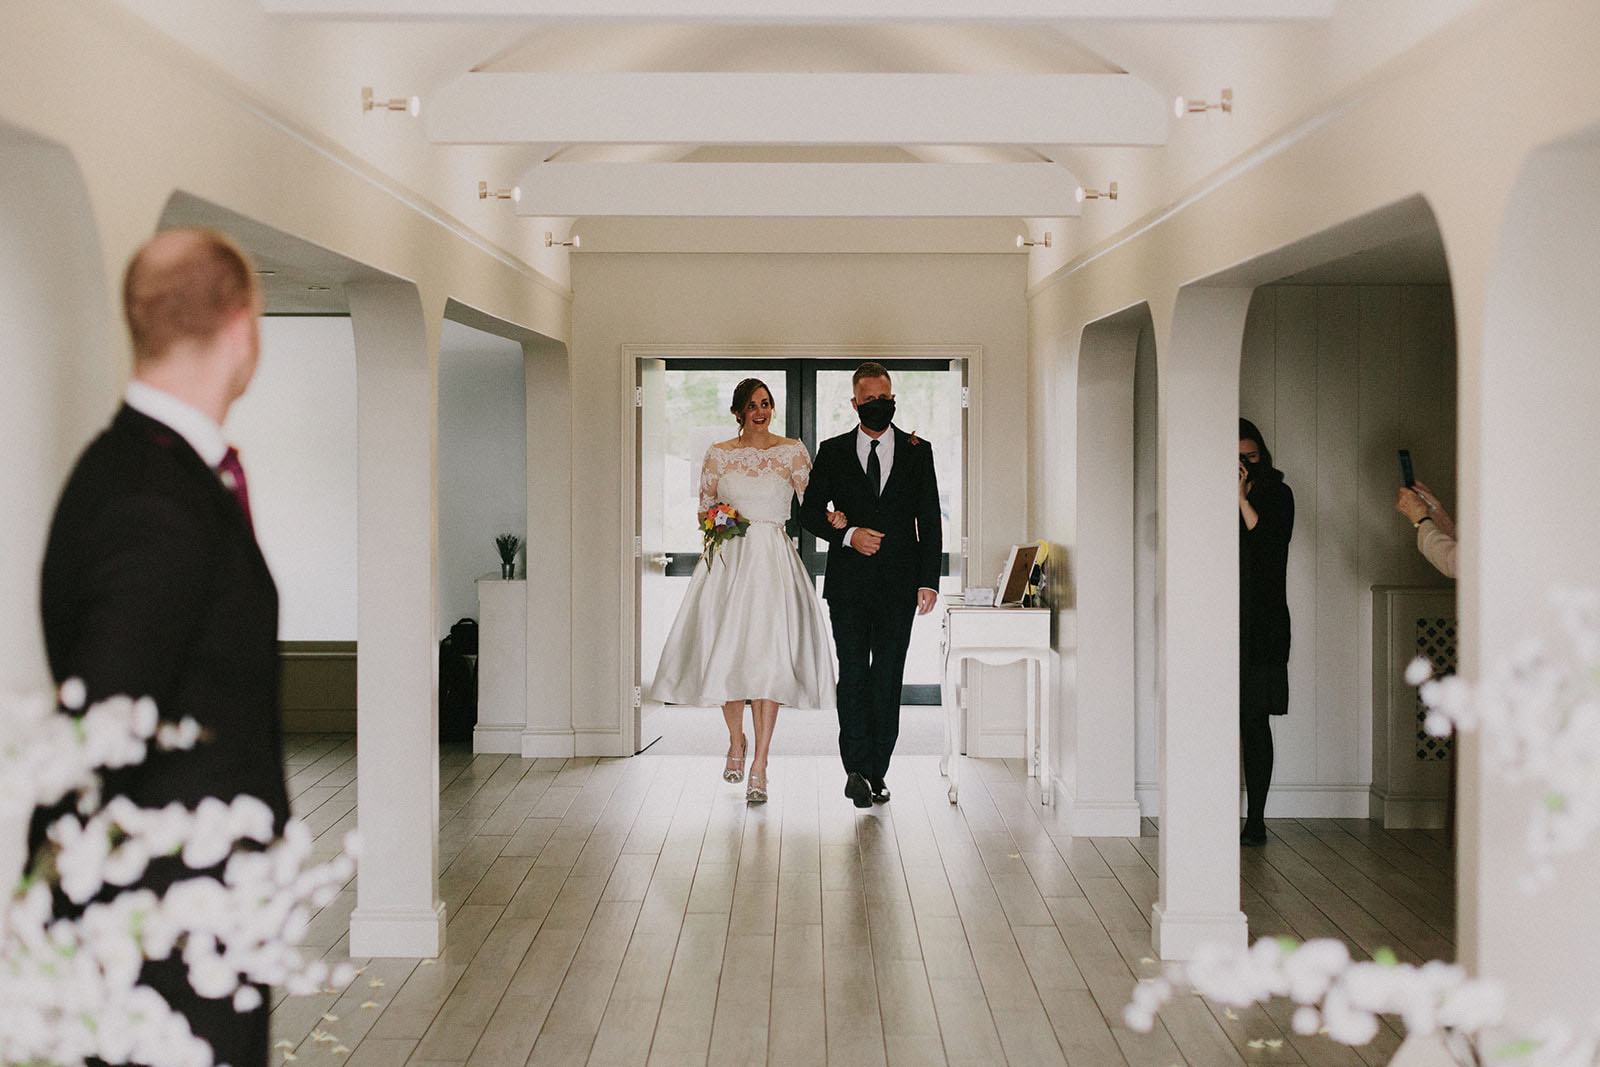 Newly married Bride and Groom walking in the entrance of the main wedding room at All Saints Hotel